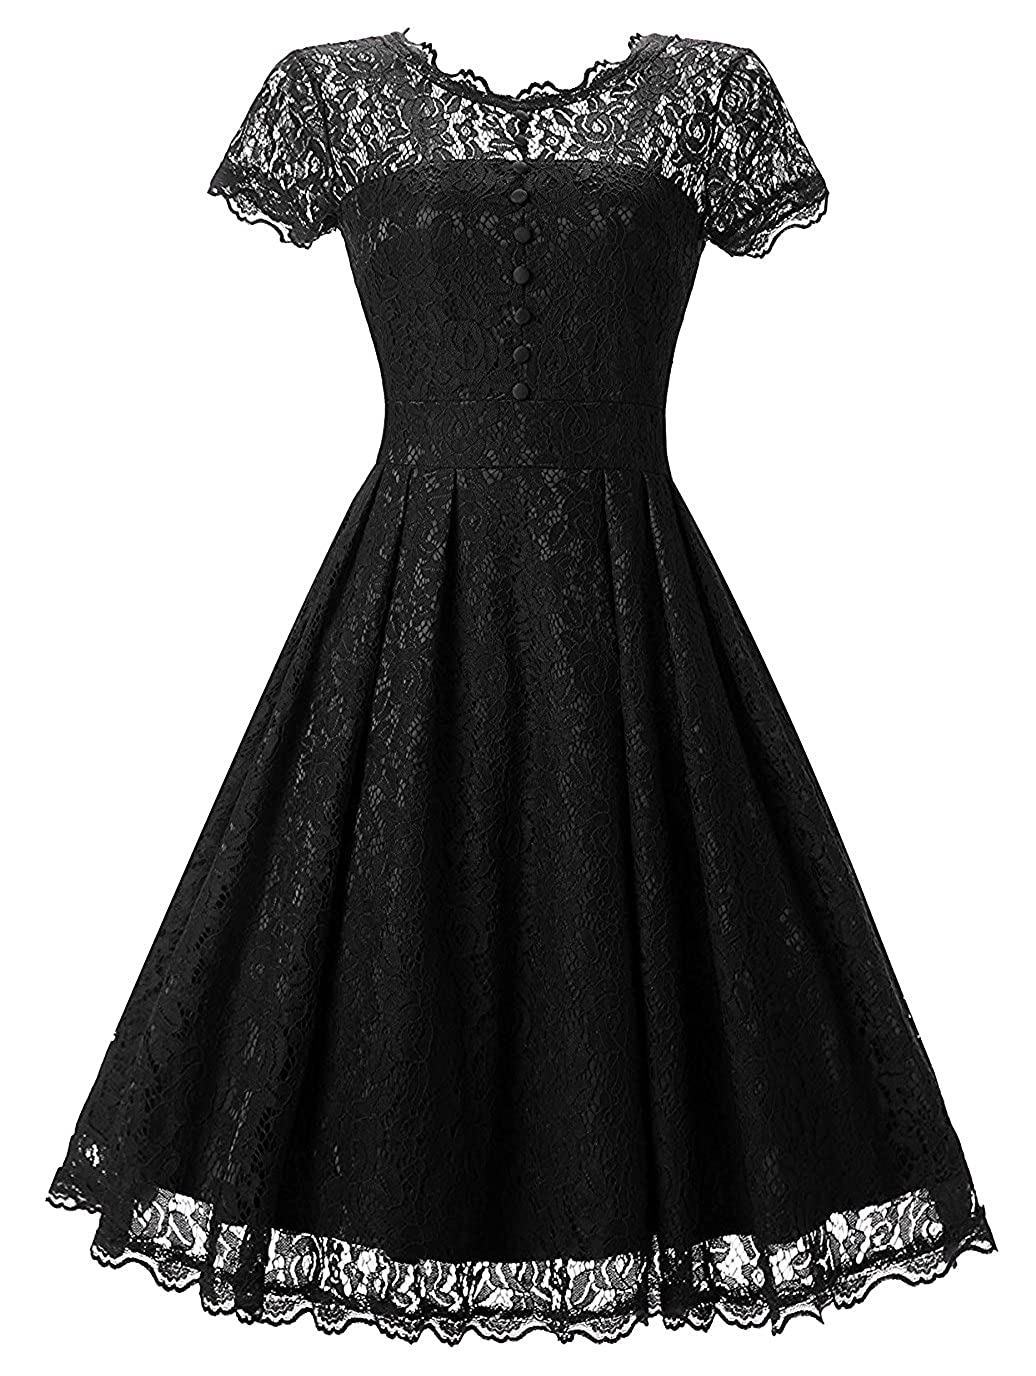 a427d3721c1b Feature: High Quality, Retro Style, Floral Lace, Cap Sleeve, Solid , Swing  Skirt. Material: 64% Cotton,32% Nylon,4%Spandex(Inside),100% Nylon(Outside)